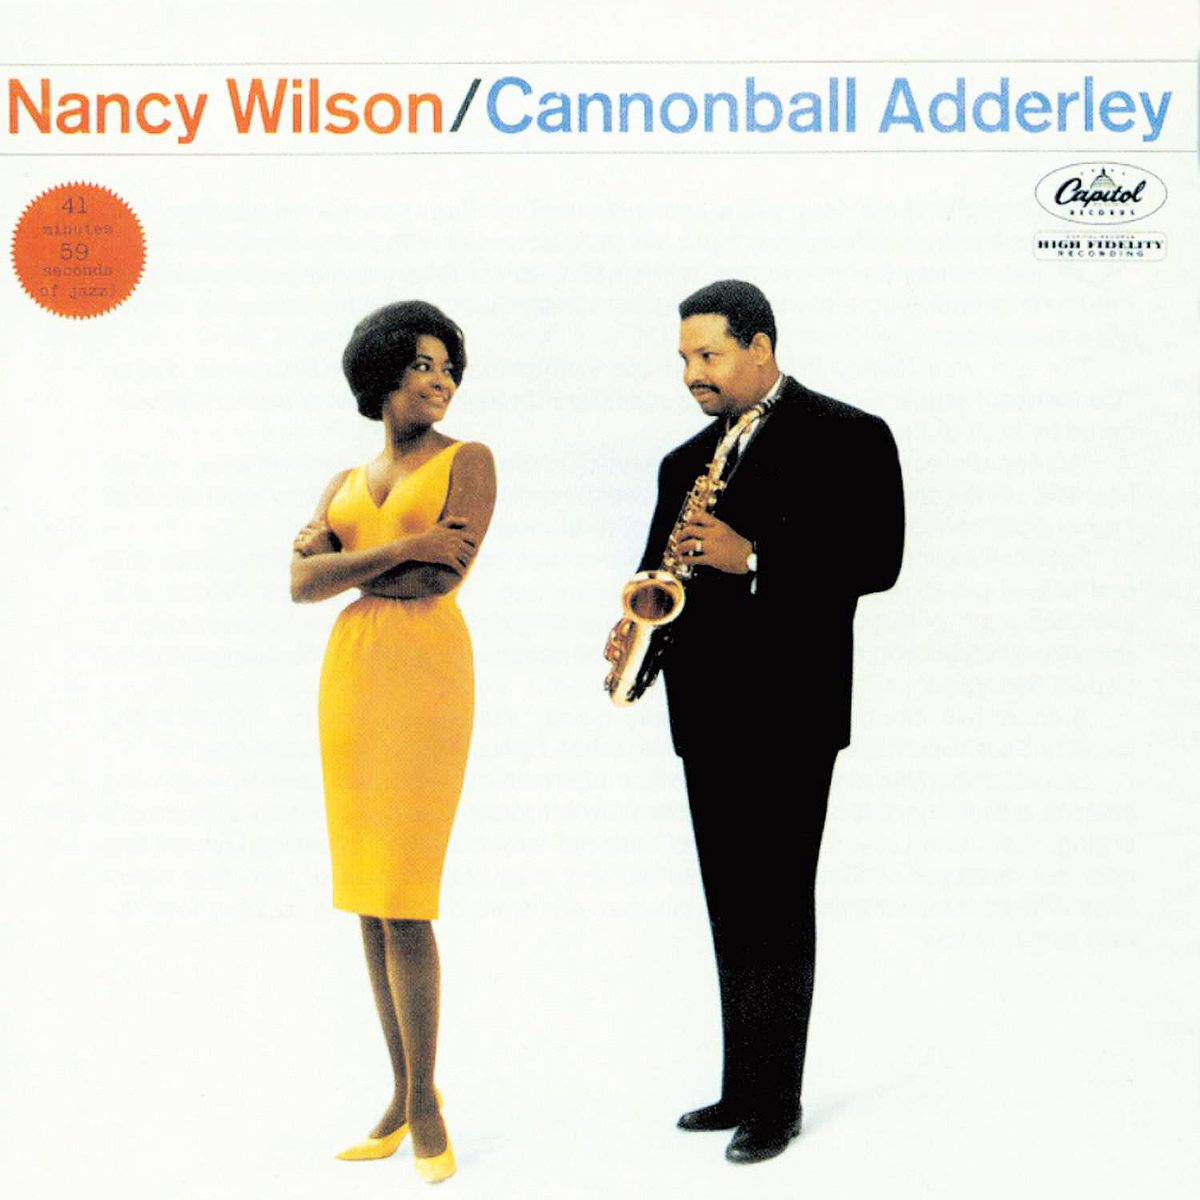 RIP #NancyWilson, the wonderful singer & civil rights activist whose supple voice & graceful sense of swing bridged Jazz & Pop on many @CapitolRecords thru the 1960-70s. We're putting on the classic 'Nancy Wilson & Cannonball Adderley' in her honor today:  https://t.co/H83K8N7tXX